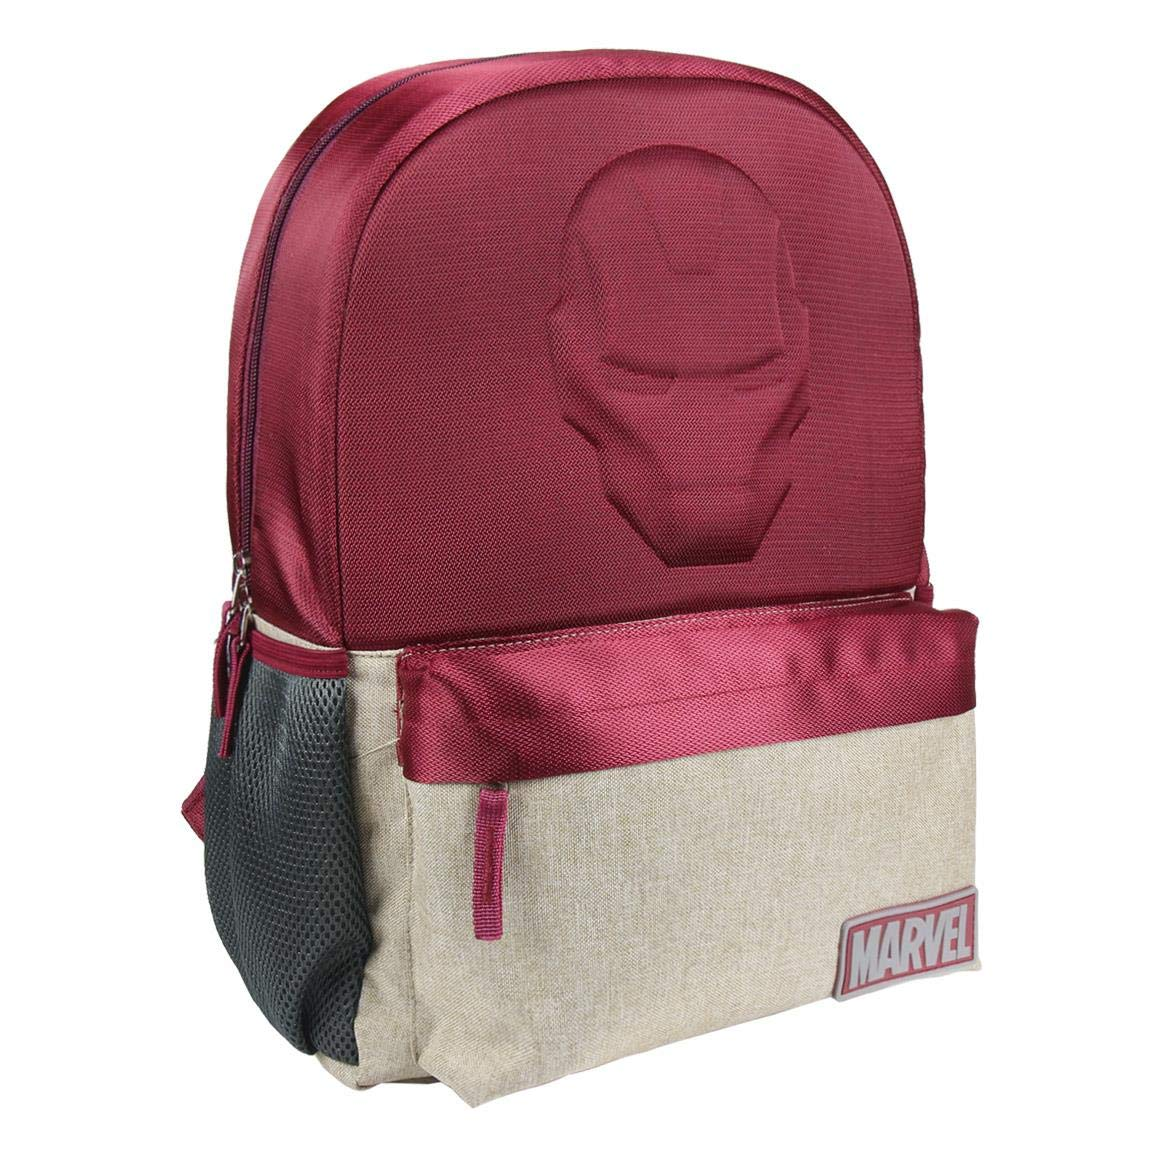 71JwDmzxrqL - Mochila Escolar Instituto Avengers Iron Man